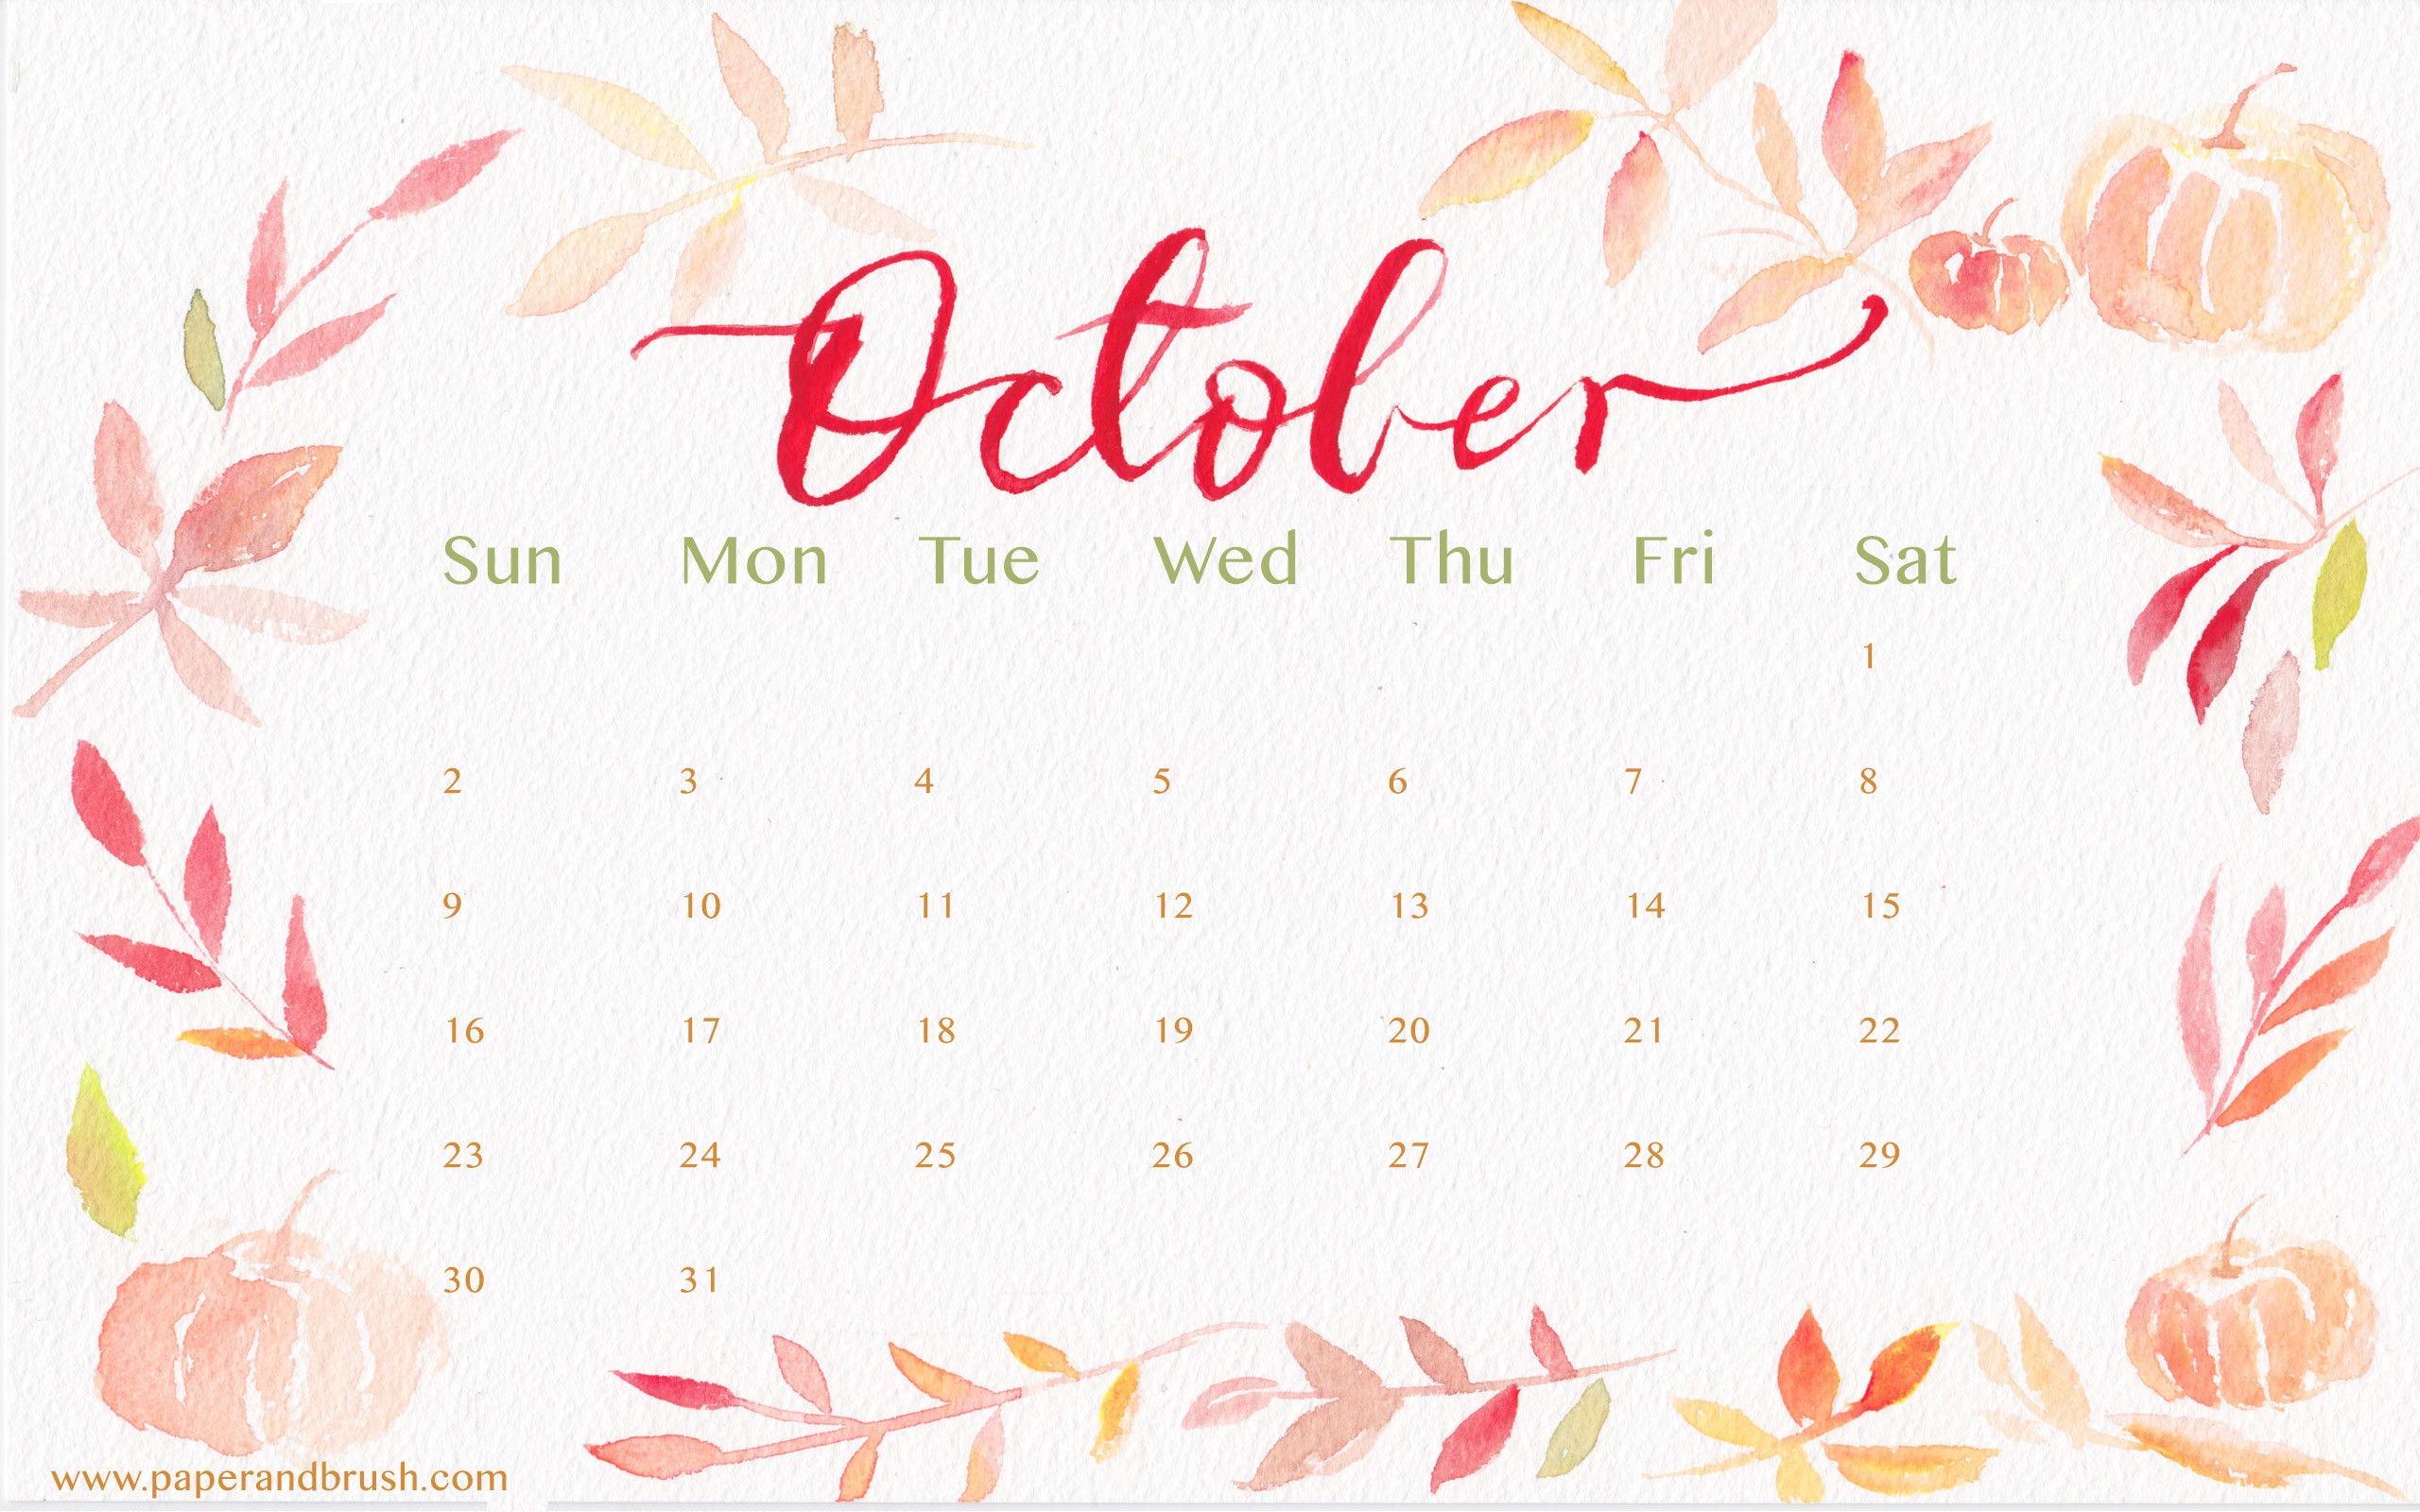 Wallpaper Calendar Oct : Desktop wallpaper calendars october  images